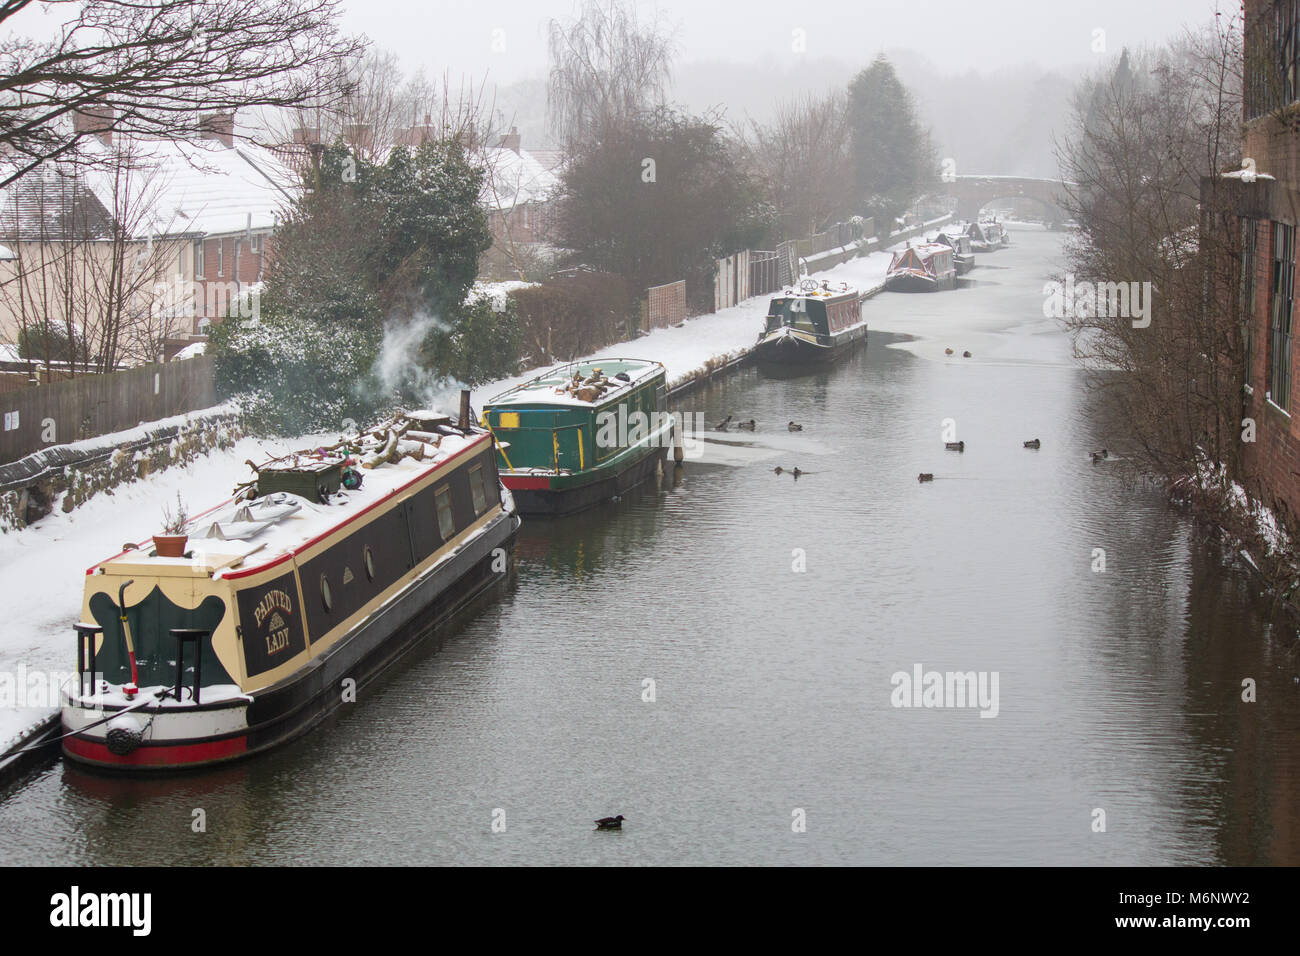 Canal boats, barges, narrow boats covered in snow on the Coventry canal, near Atherstone, Warwickshire - Stock Image